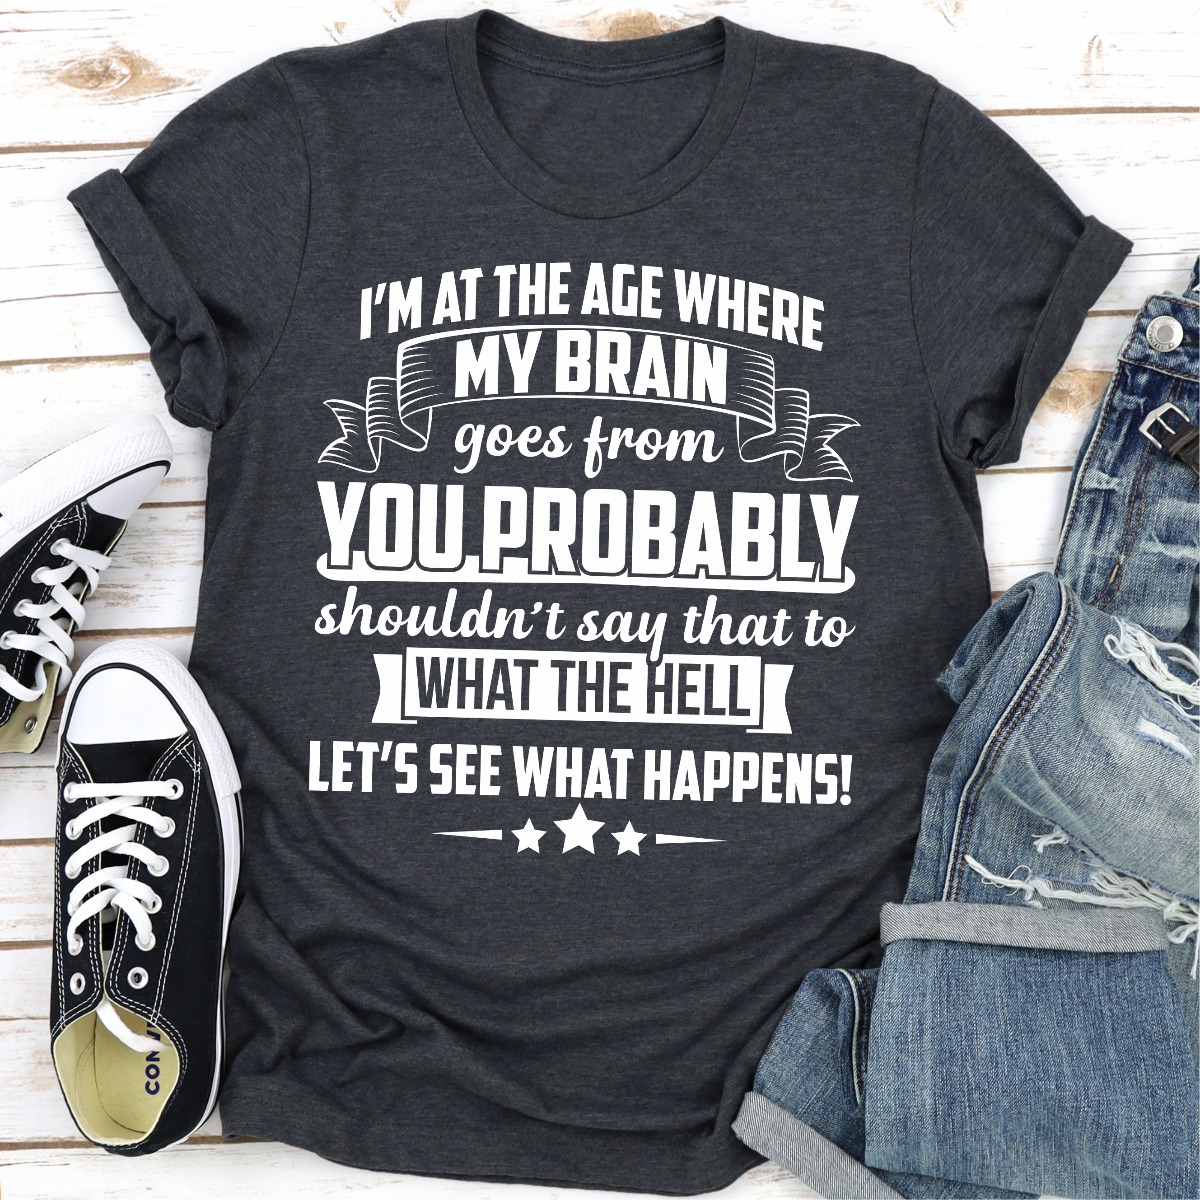 I'm At The Age Where My Brain Goes from You Probably Shouldn't Say That To What the Hell Let's See What Happens